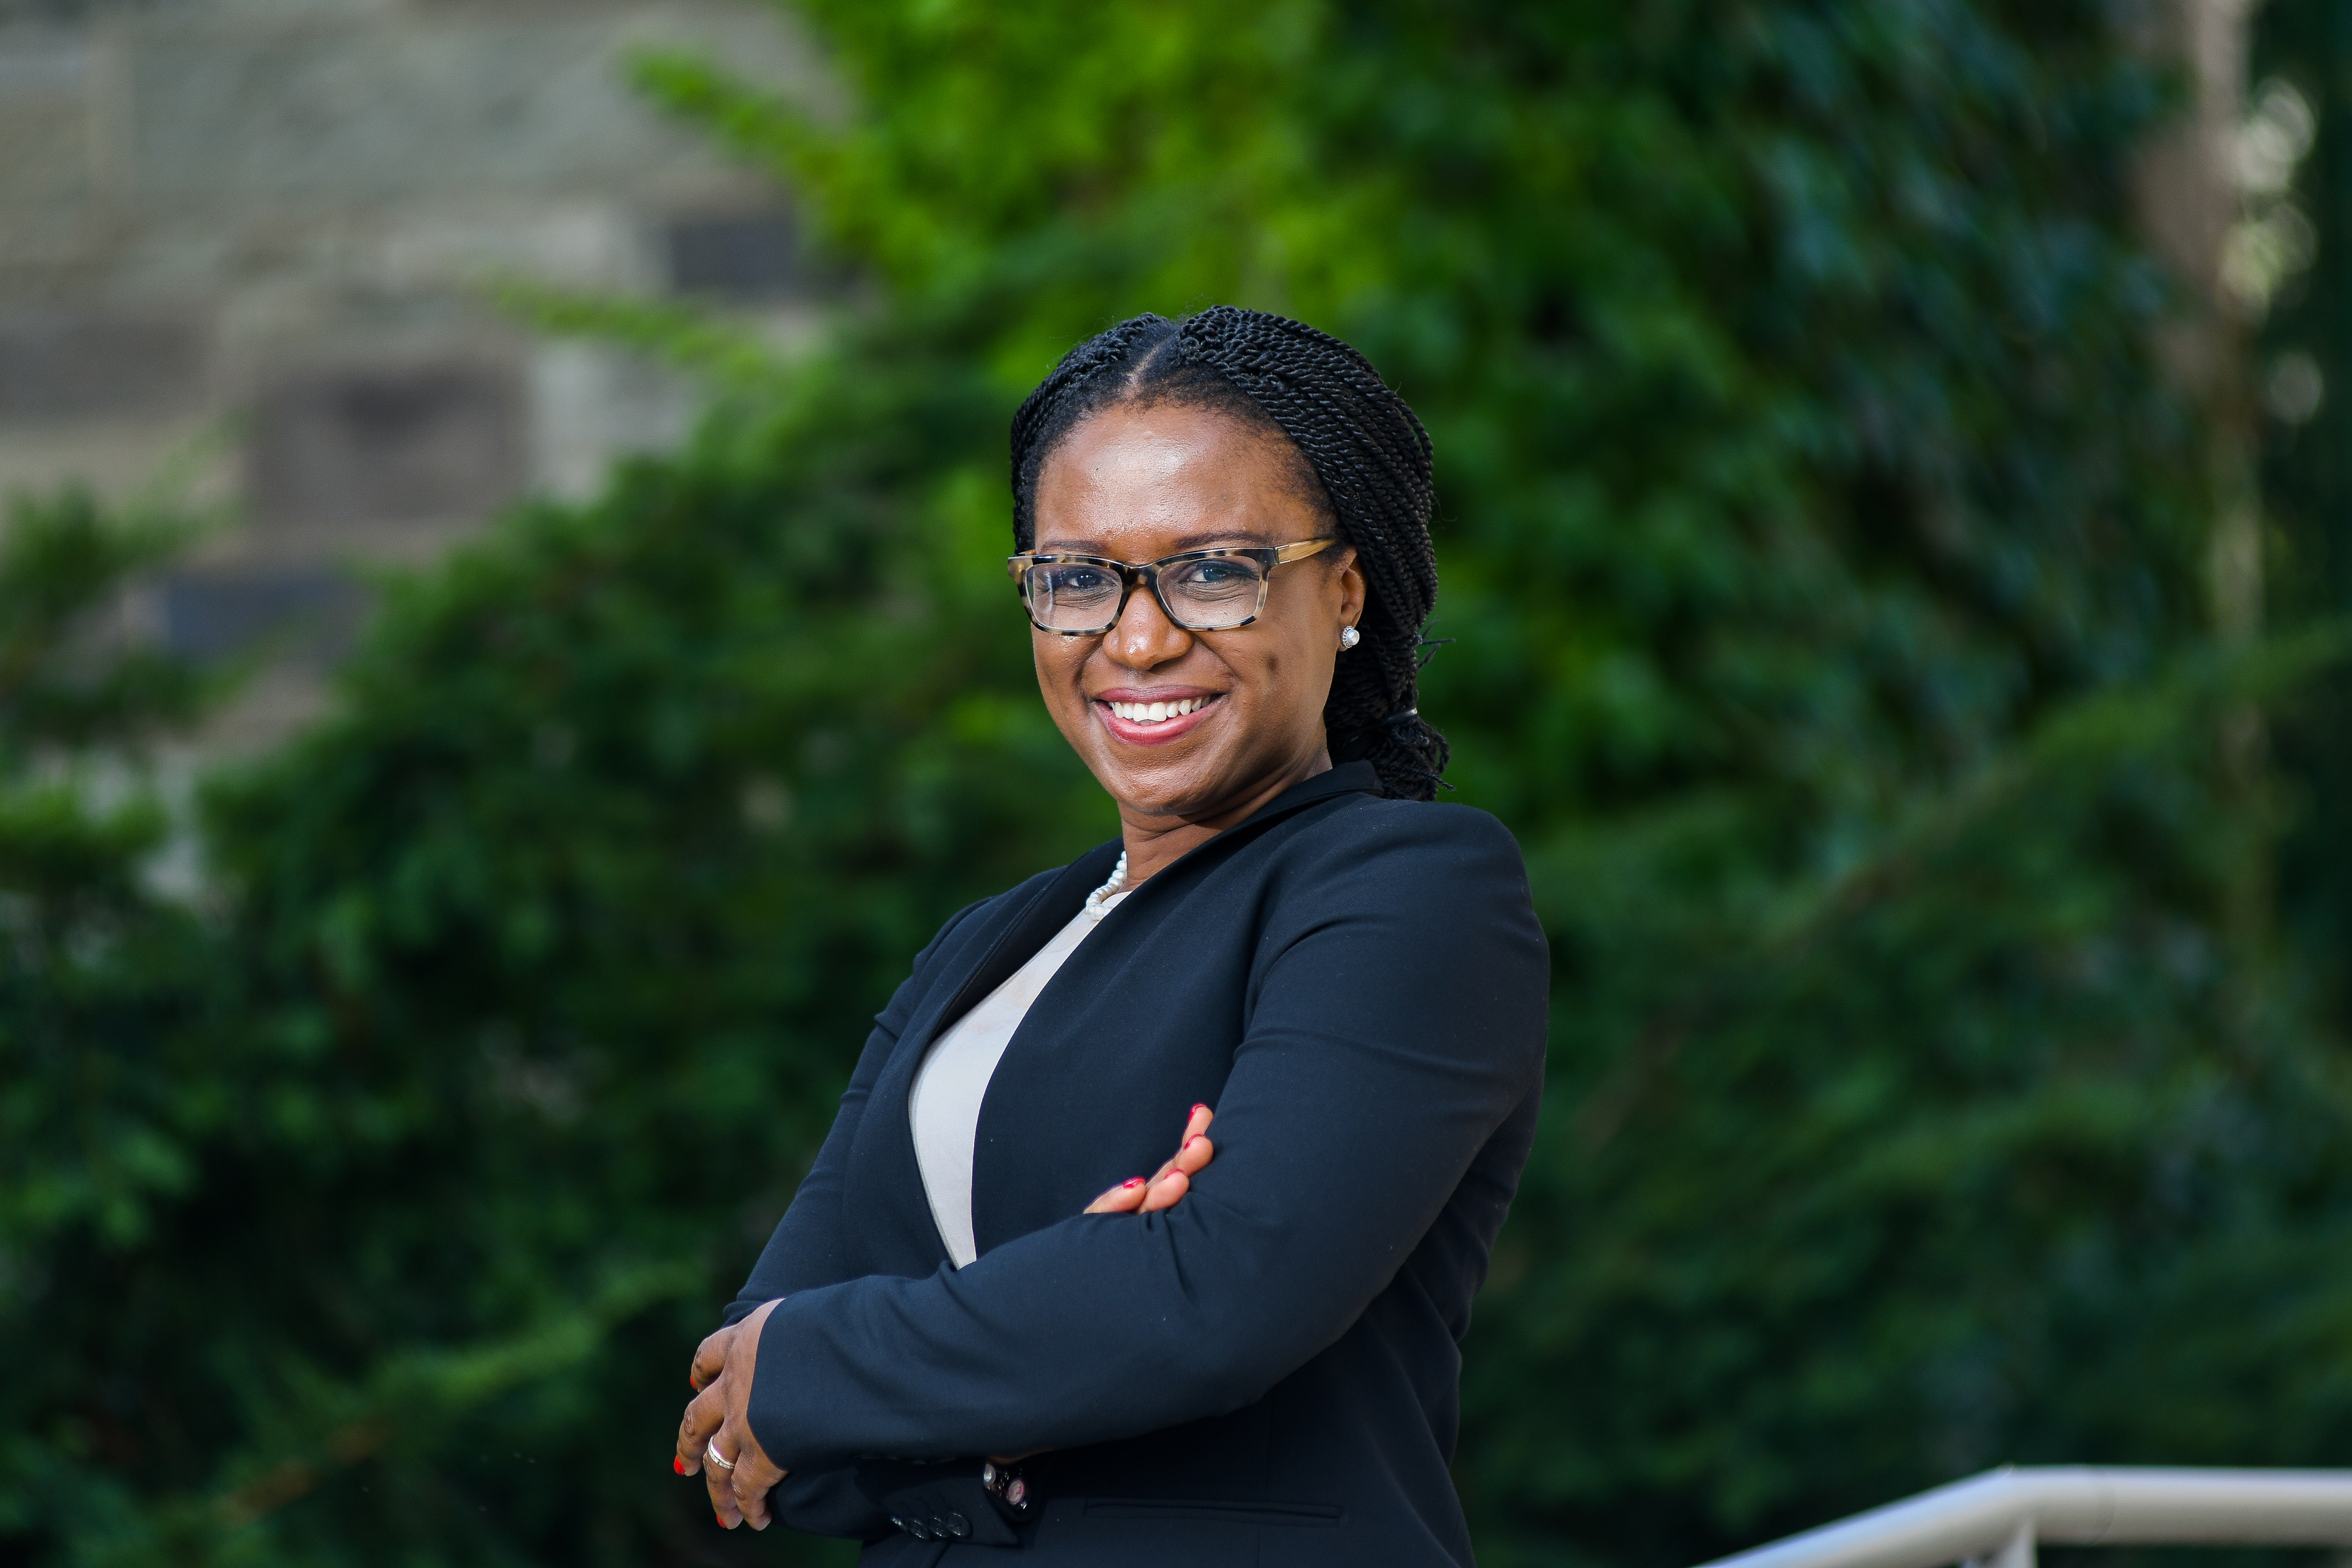 Ifeoma Ajunwaat Cornell University in Ithaca, N.Y., Friday, July 12, 2019.  (Photo by Heather Ainsworth)